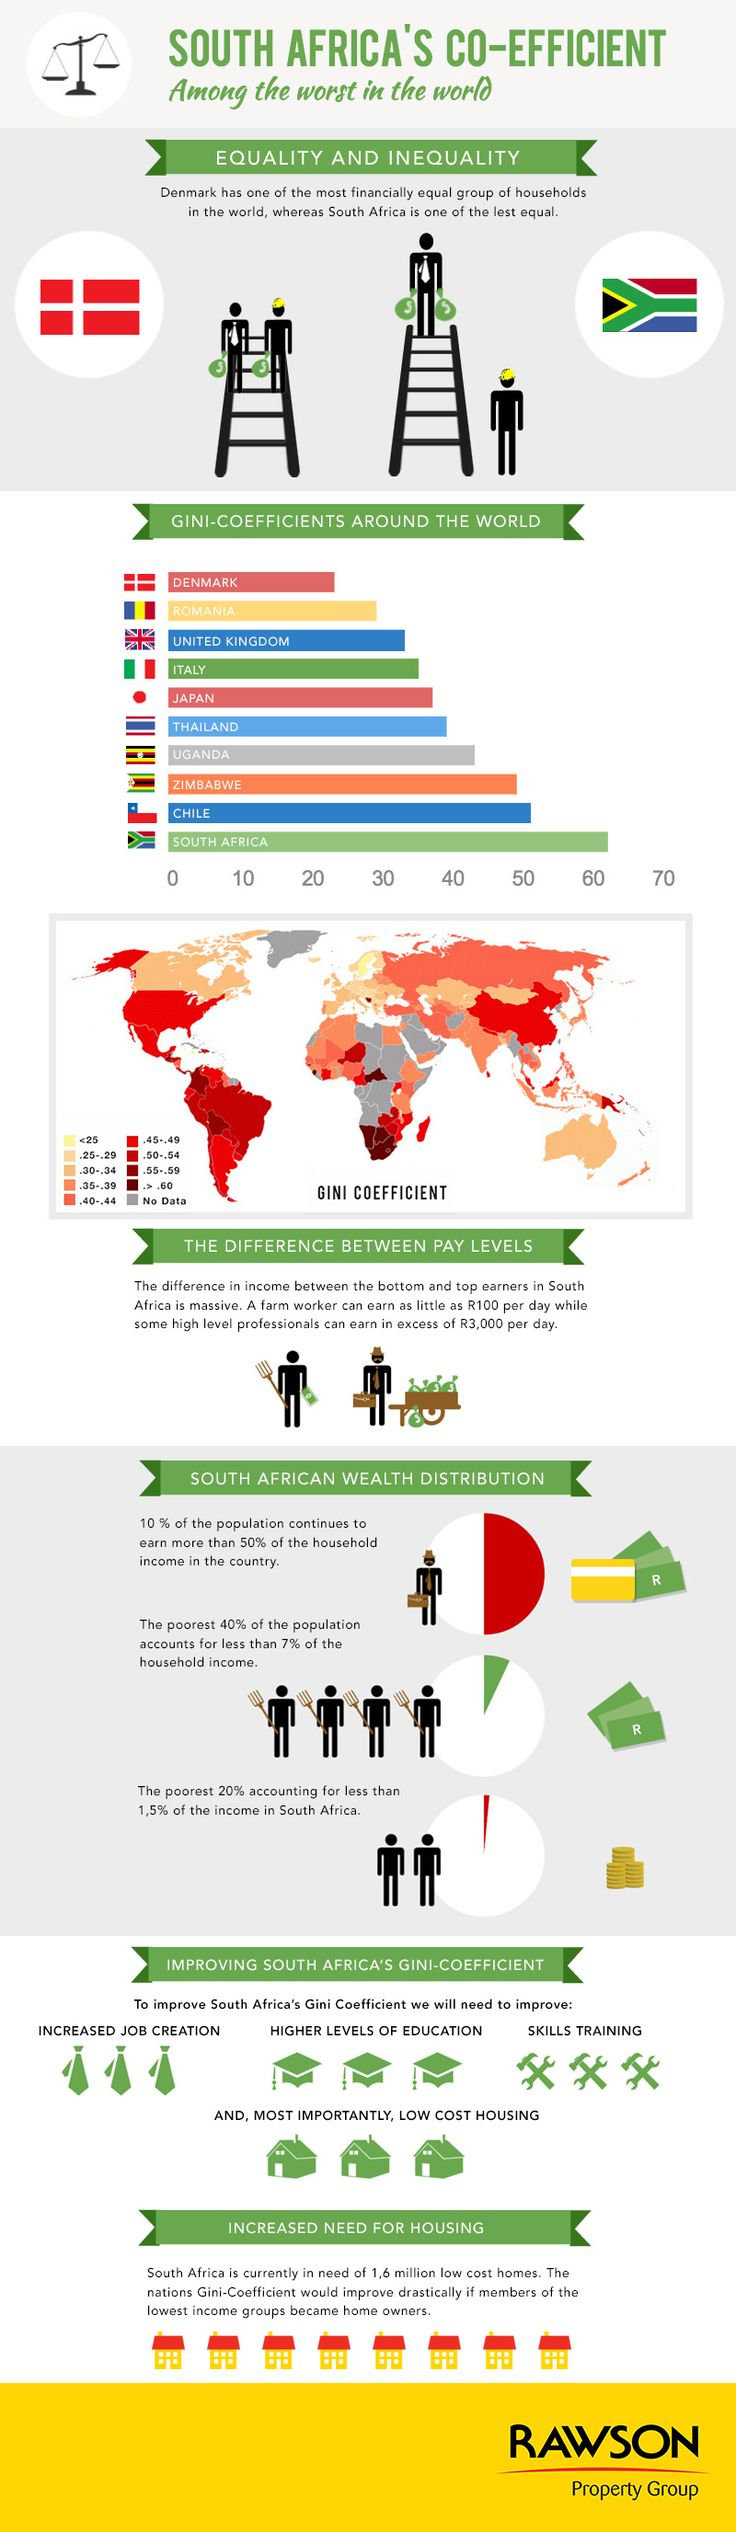 South Africa's Gini coefficient is the highest in the world #infographic #ginicoefficient http://www.rawson.co.za/news/south-africas-gini-coefficient-is-the-highest-in-the-world-id-874